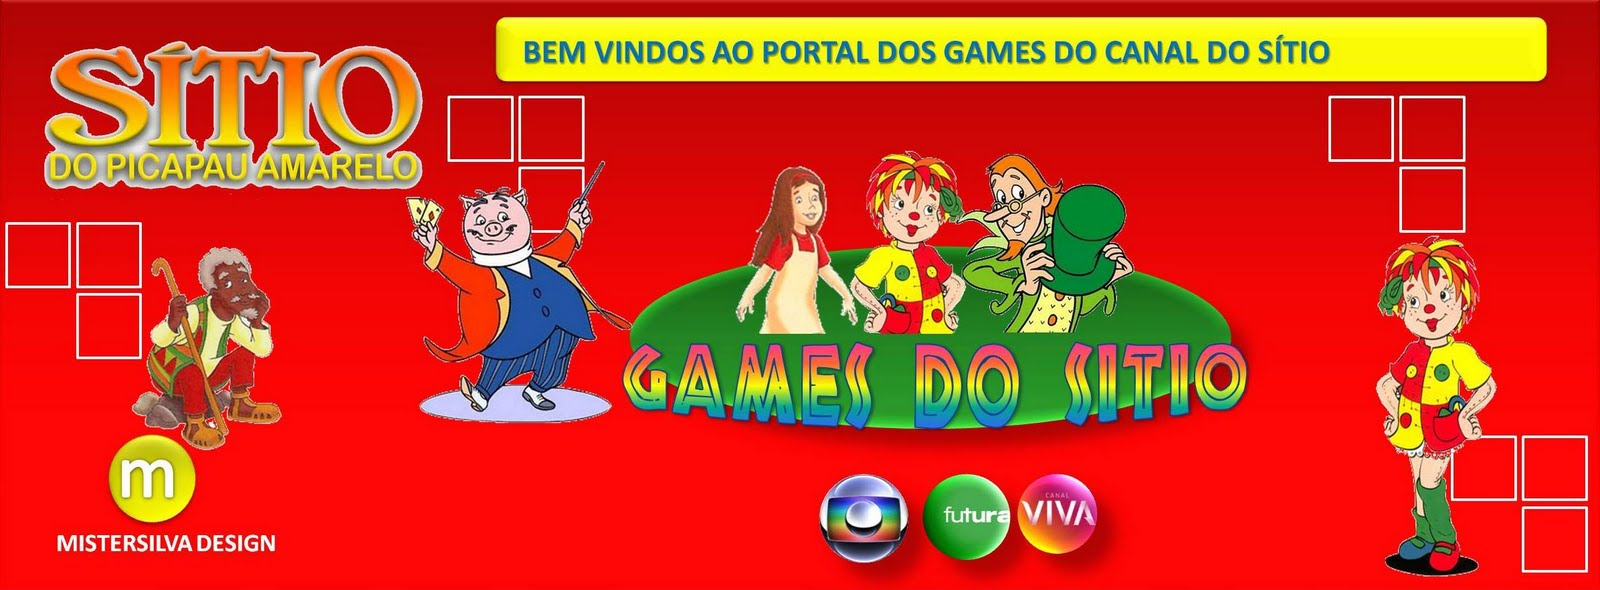 GAMES SÍTIO DO PICAPAU AMARELO